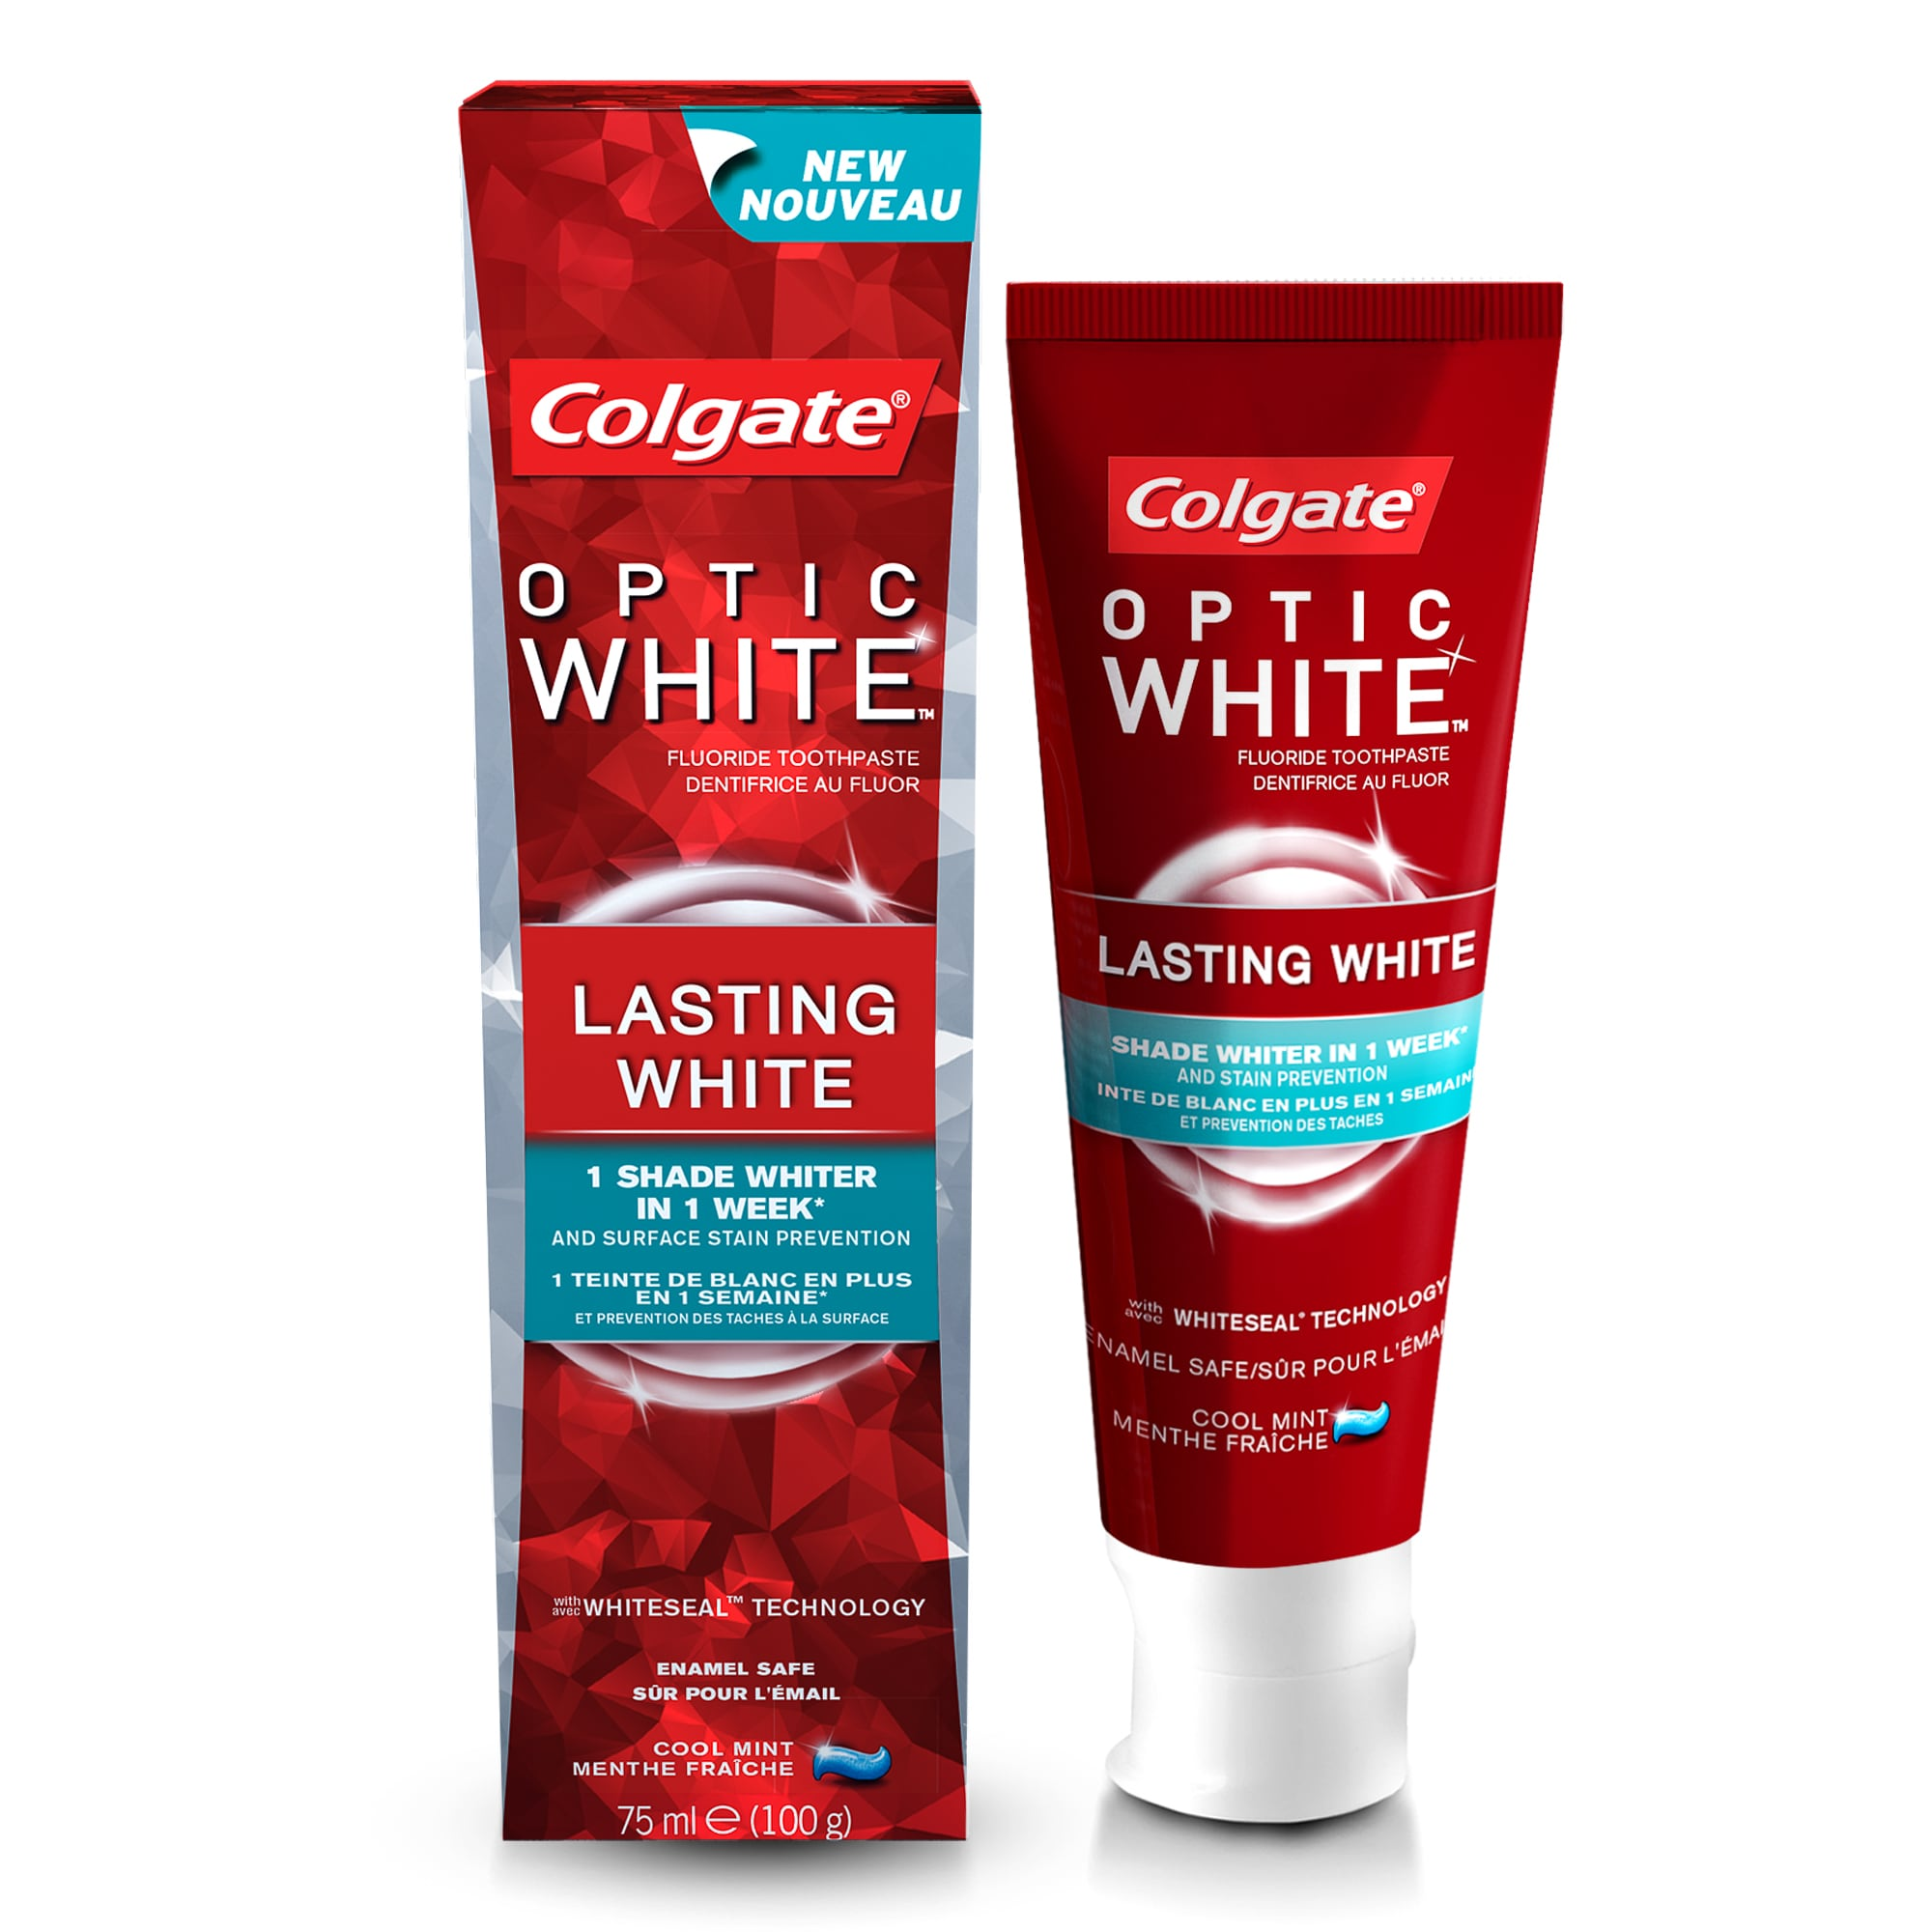 Colgate Optic White Lasting White Toothpaste